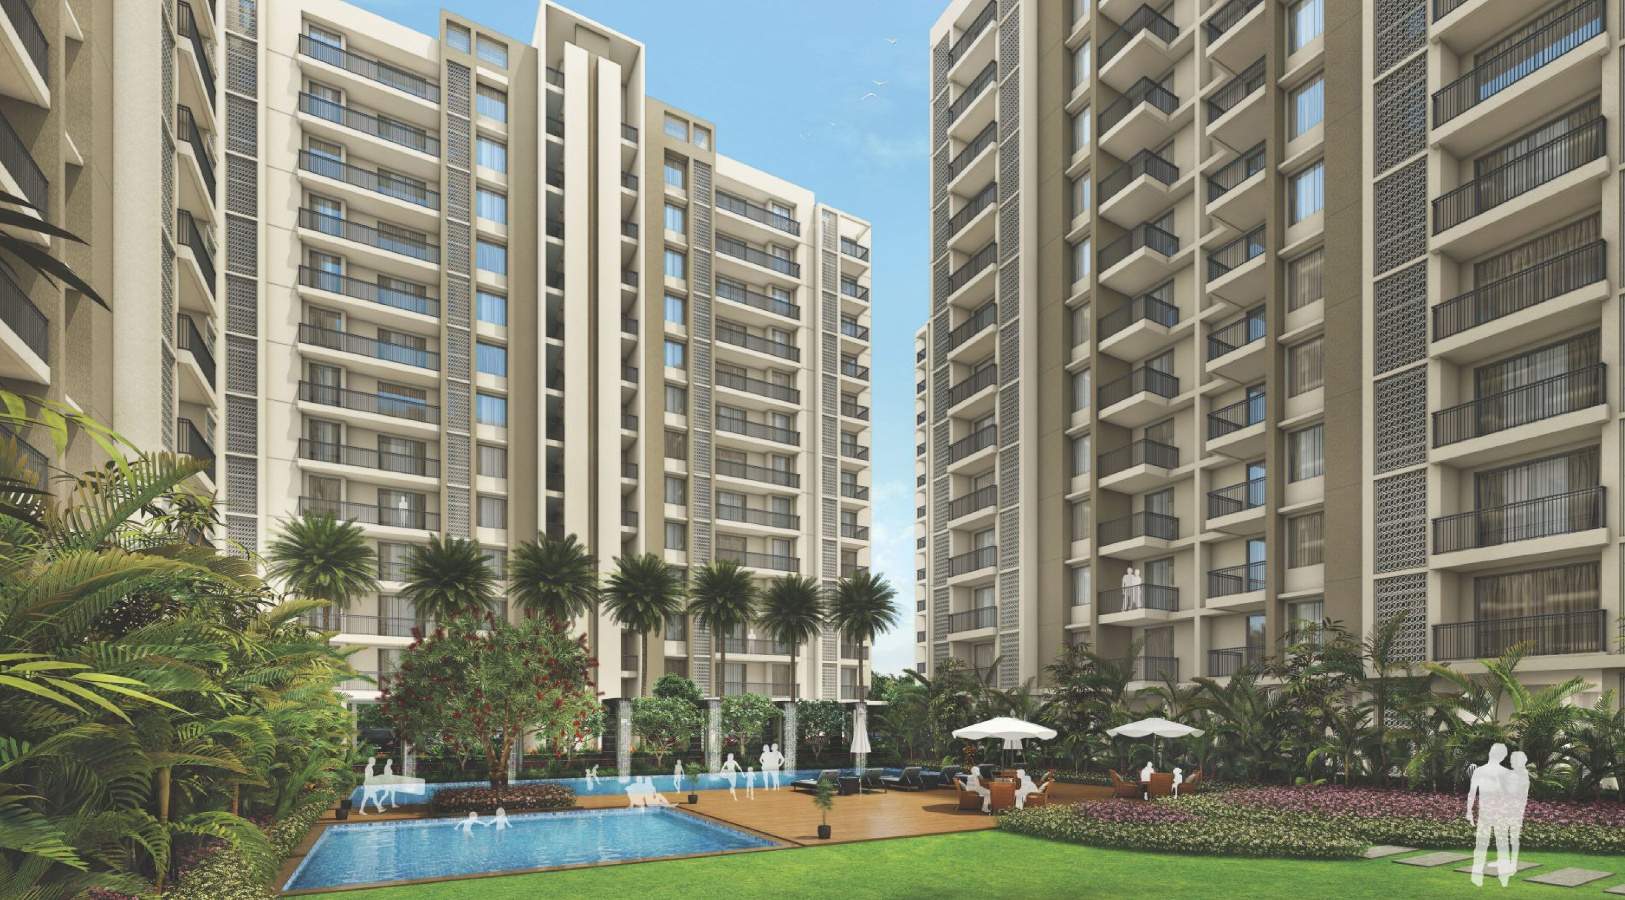 1248 sq ft 3 BHK 3T Apartment for Sale in Ashadeep Group